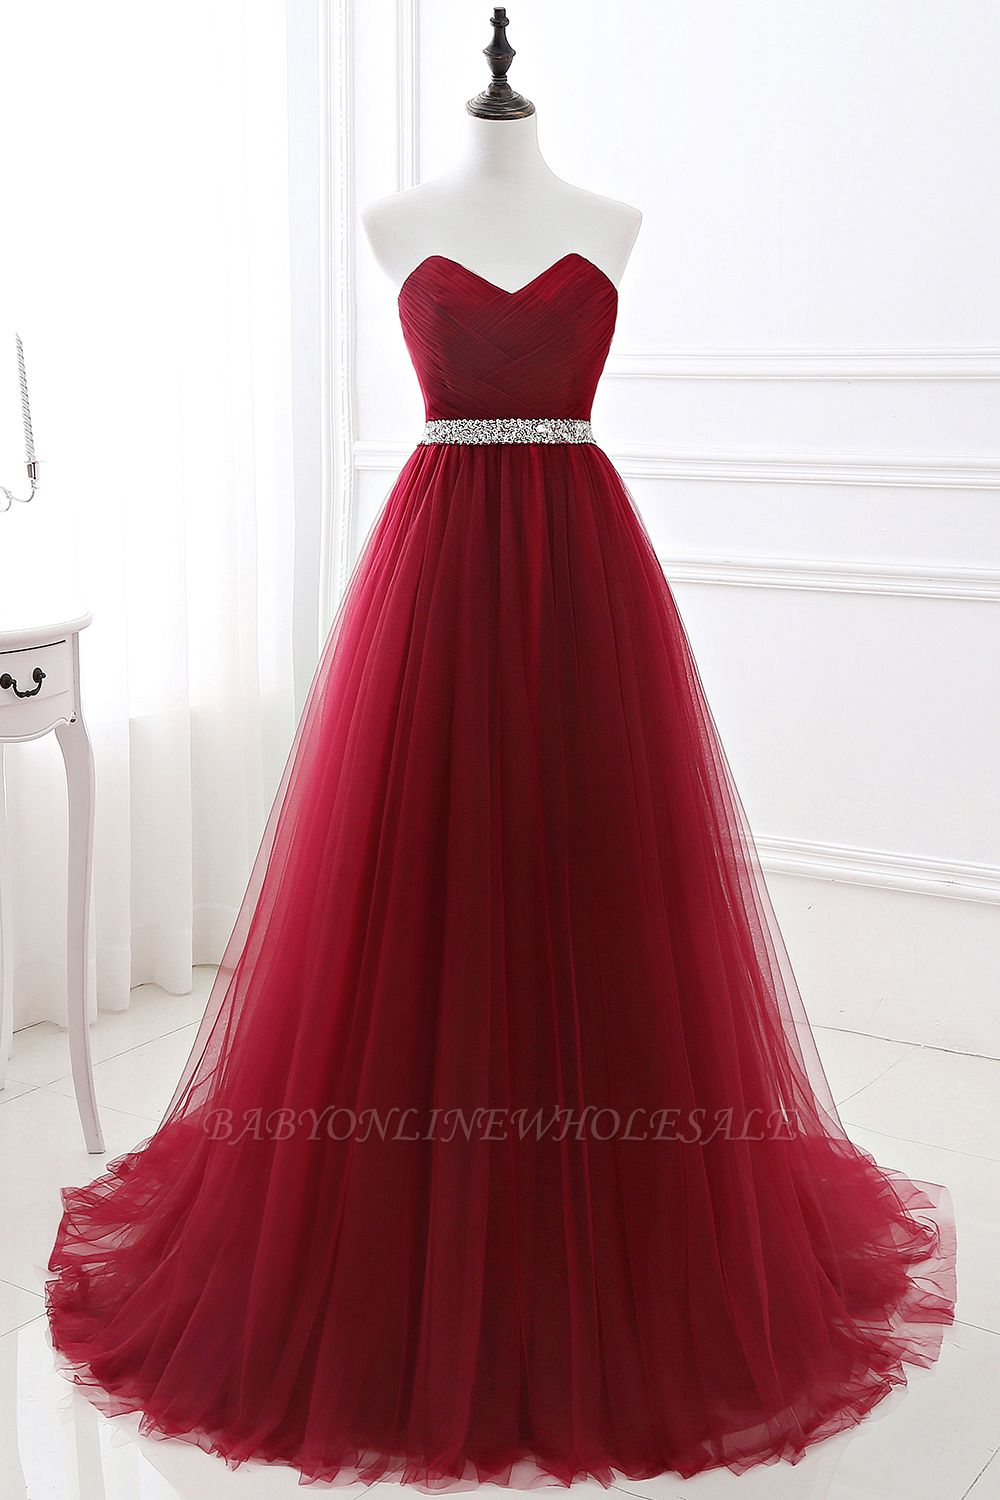 ANGELINA | A-line Sweetheart Burgundy Tulle Prom Dress With Beading